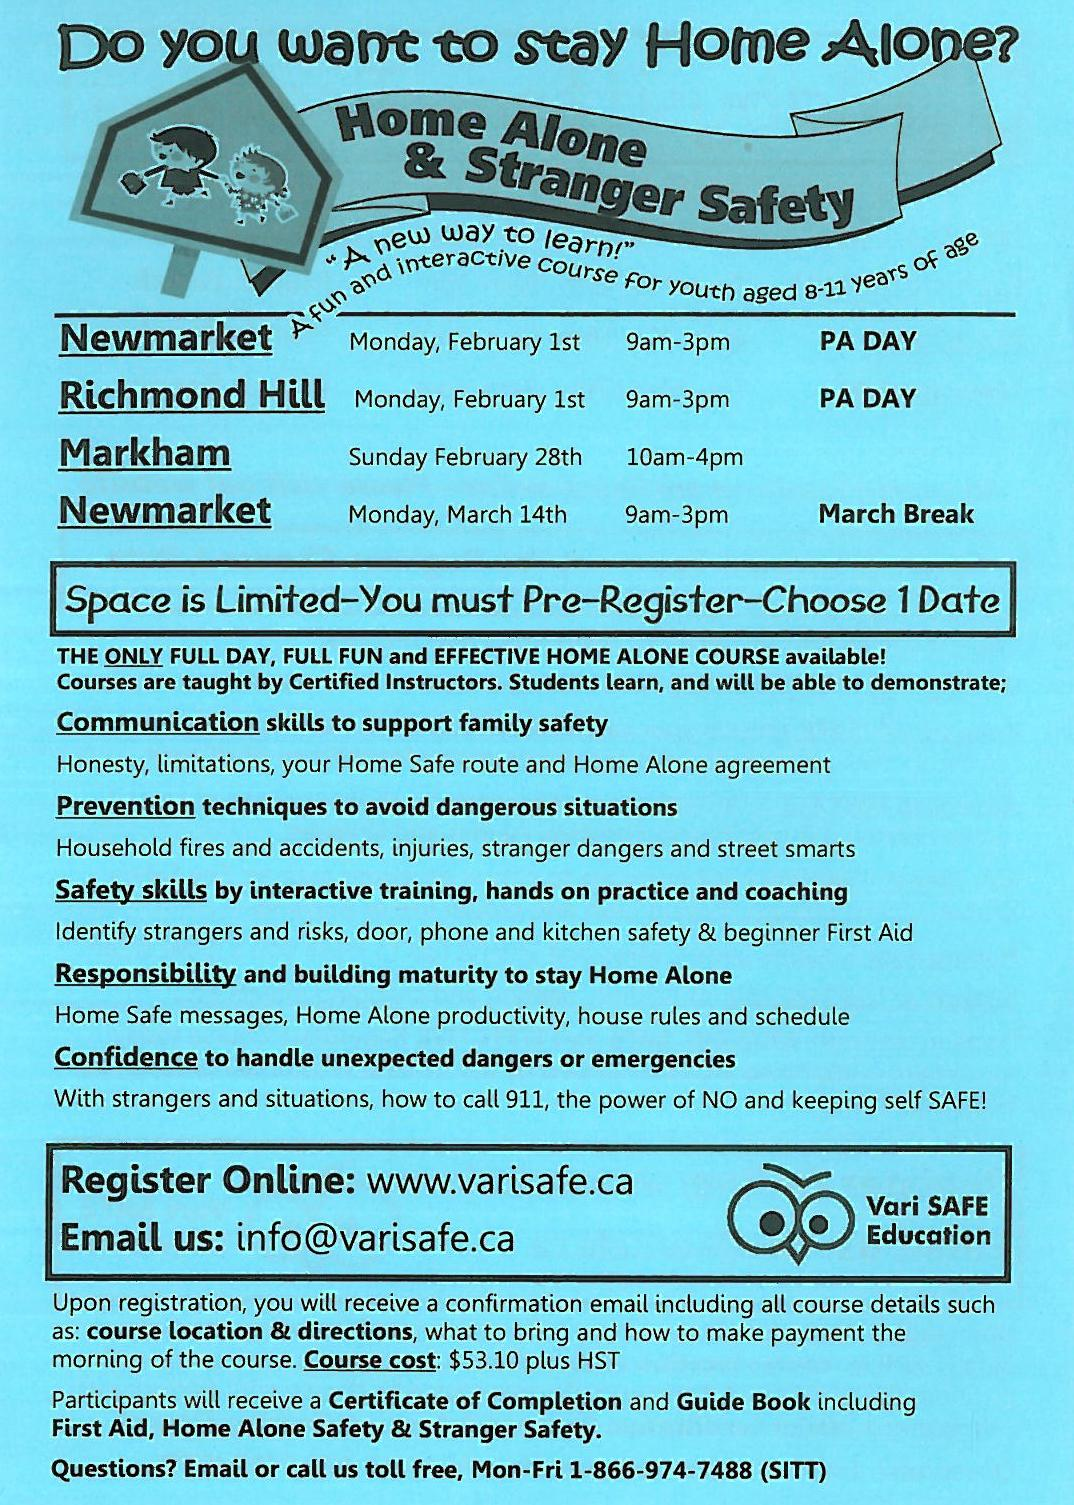 Home Alone and Babysitters Training Courses – Herbert H. Carnegie P. S.